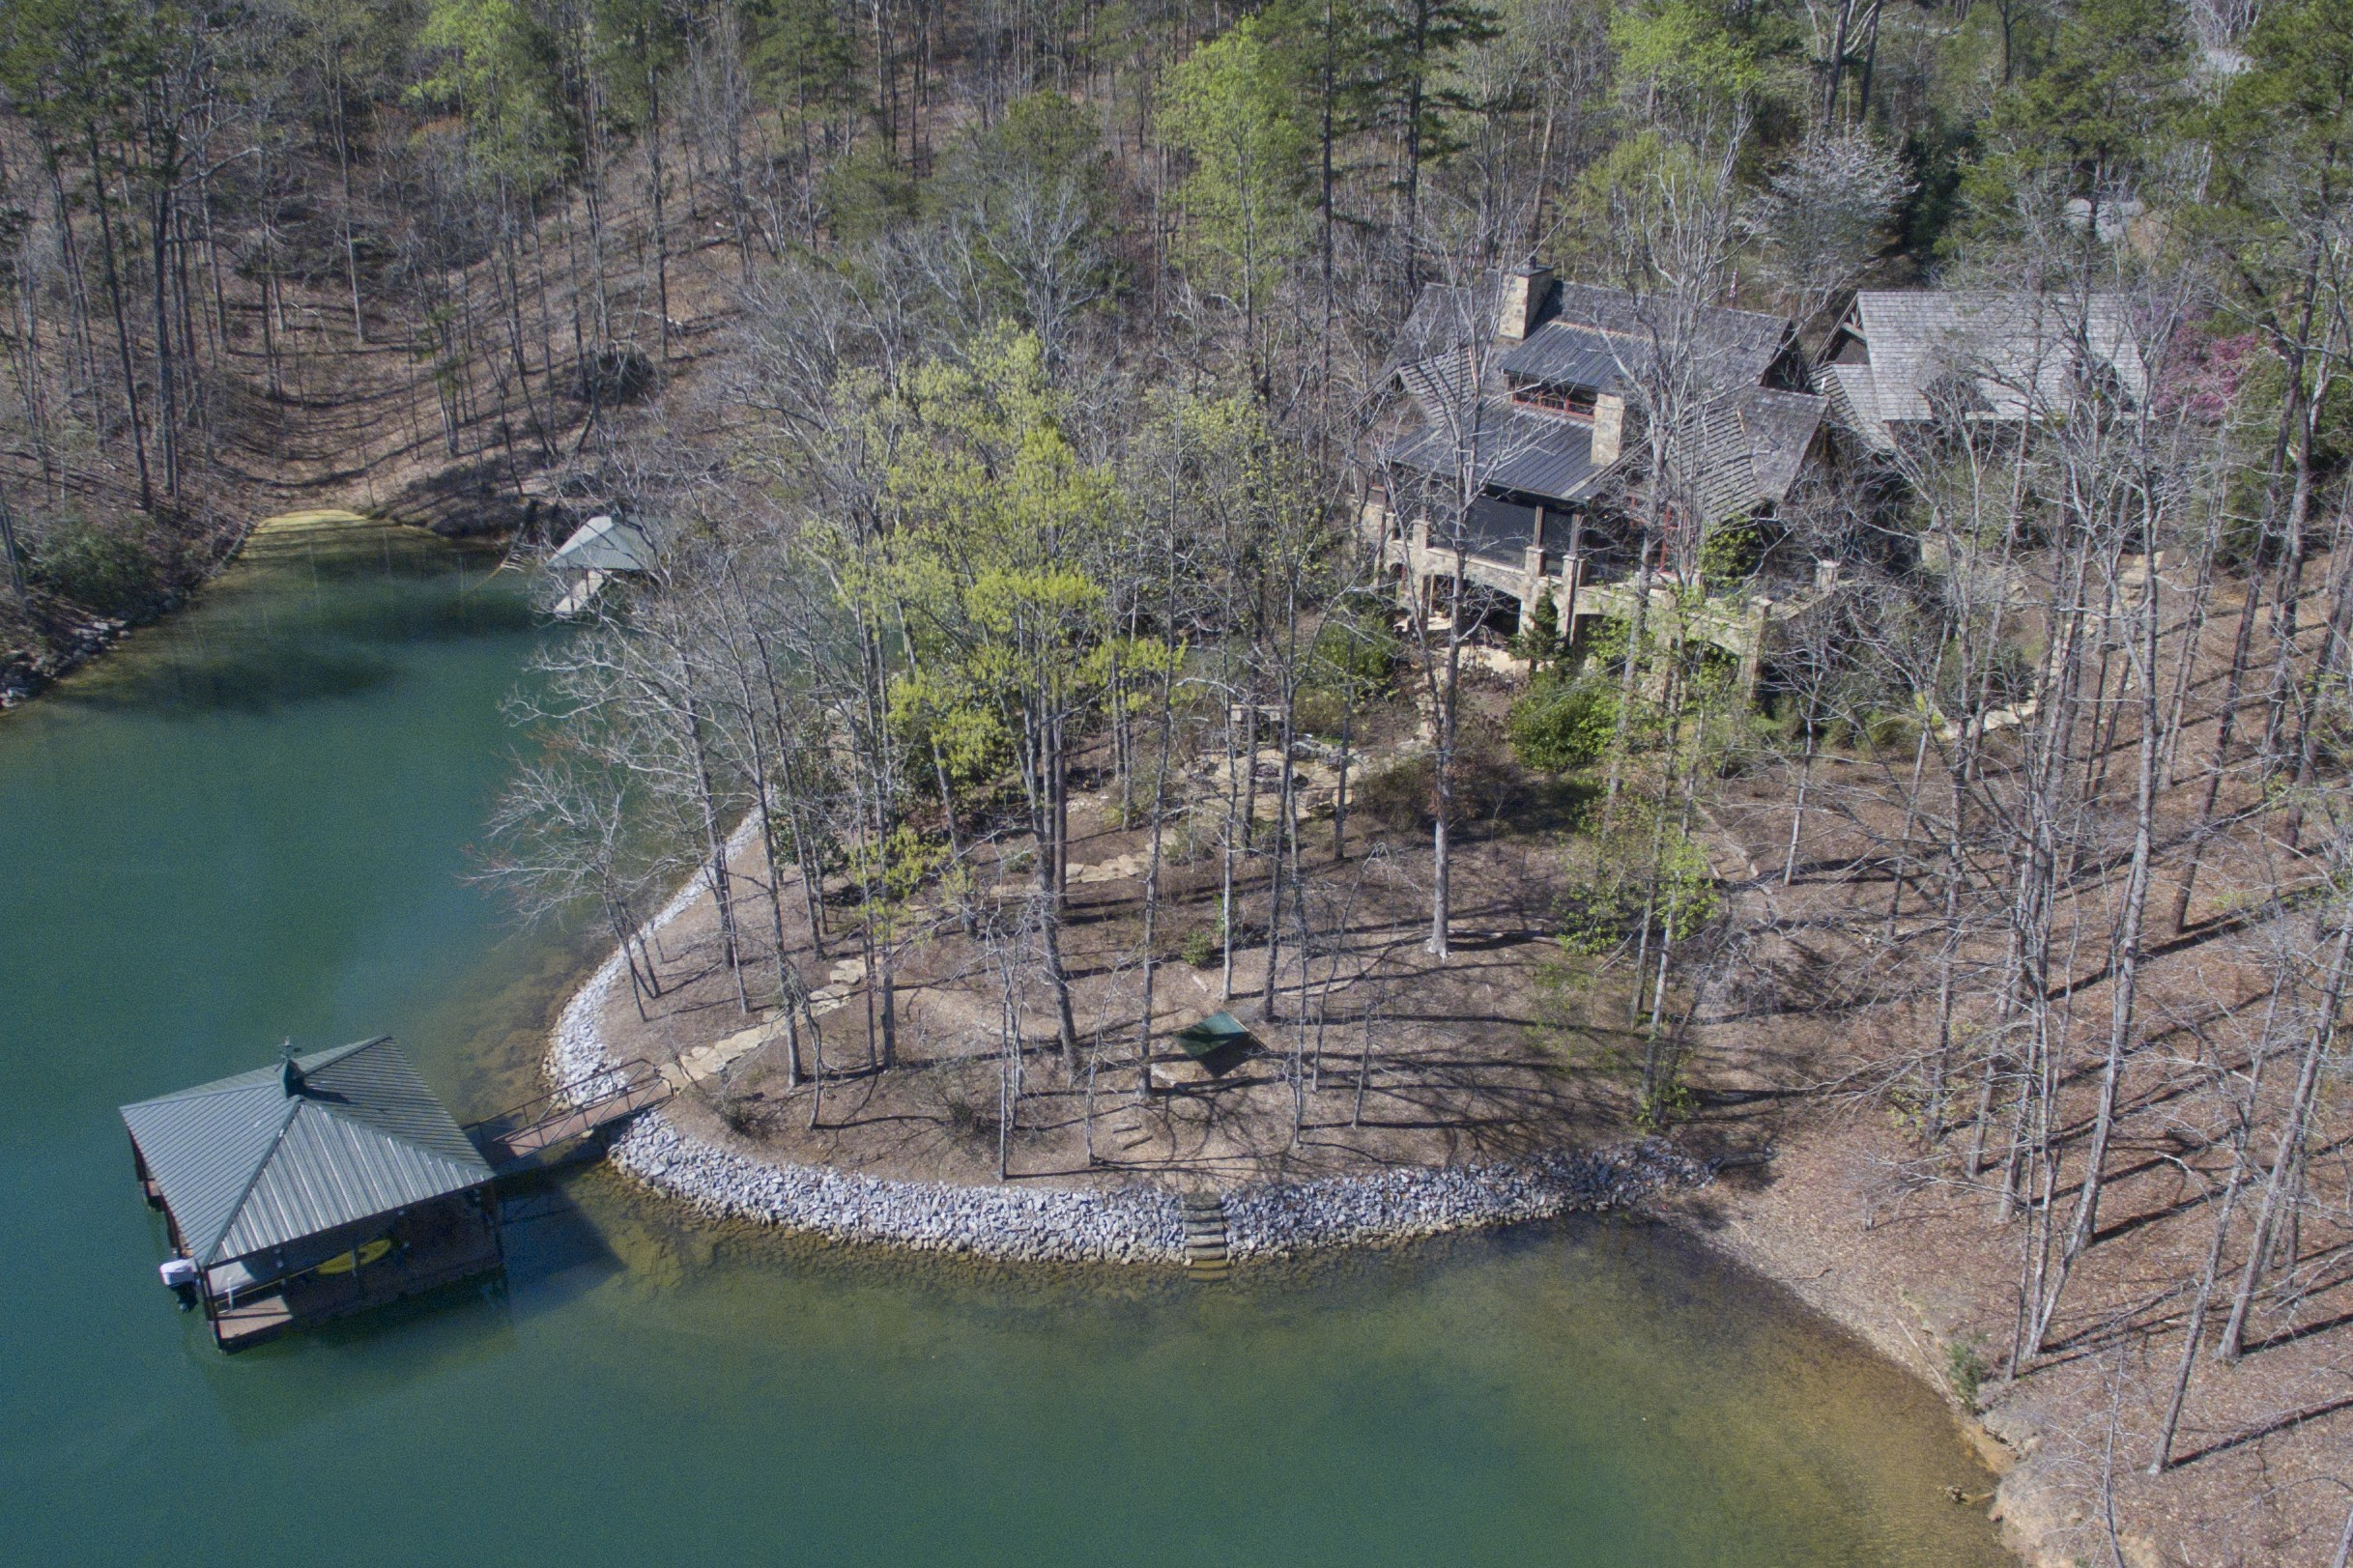 Single Family Home for Sale at Charm, Comfort, Convenience & Privacy on 2.44 acre Double-Lot Waterfront Estate 214 Creek Stone Court The Cliffs At Keowee Springs, Six Mile, South Carolina, 29682 United States